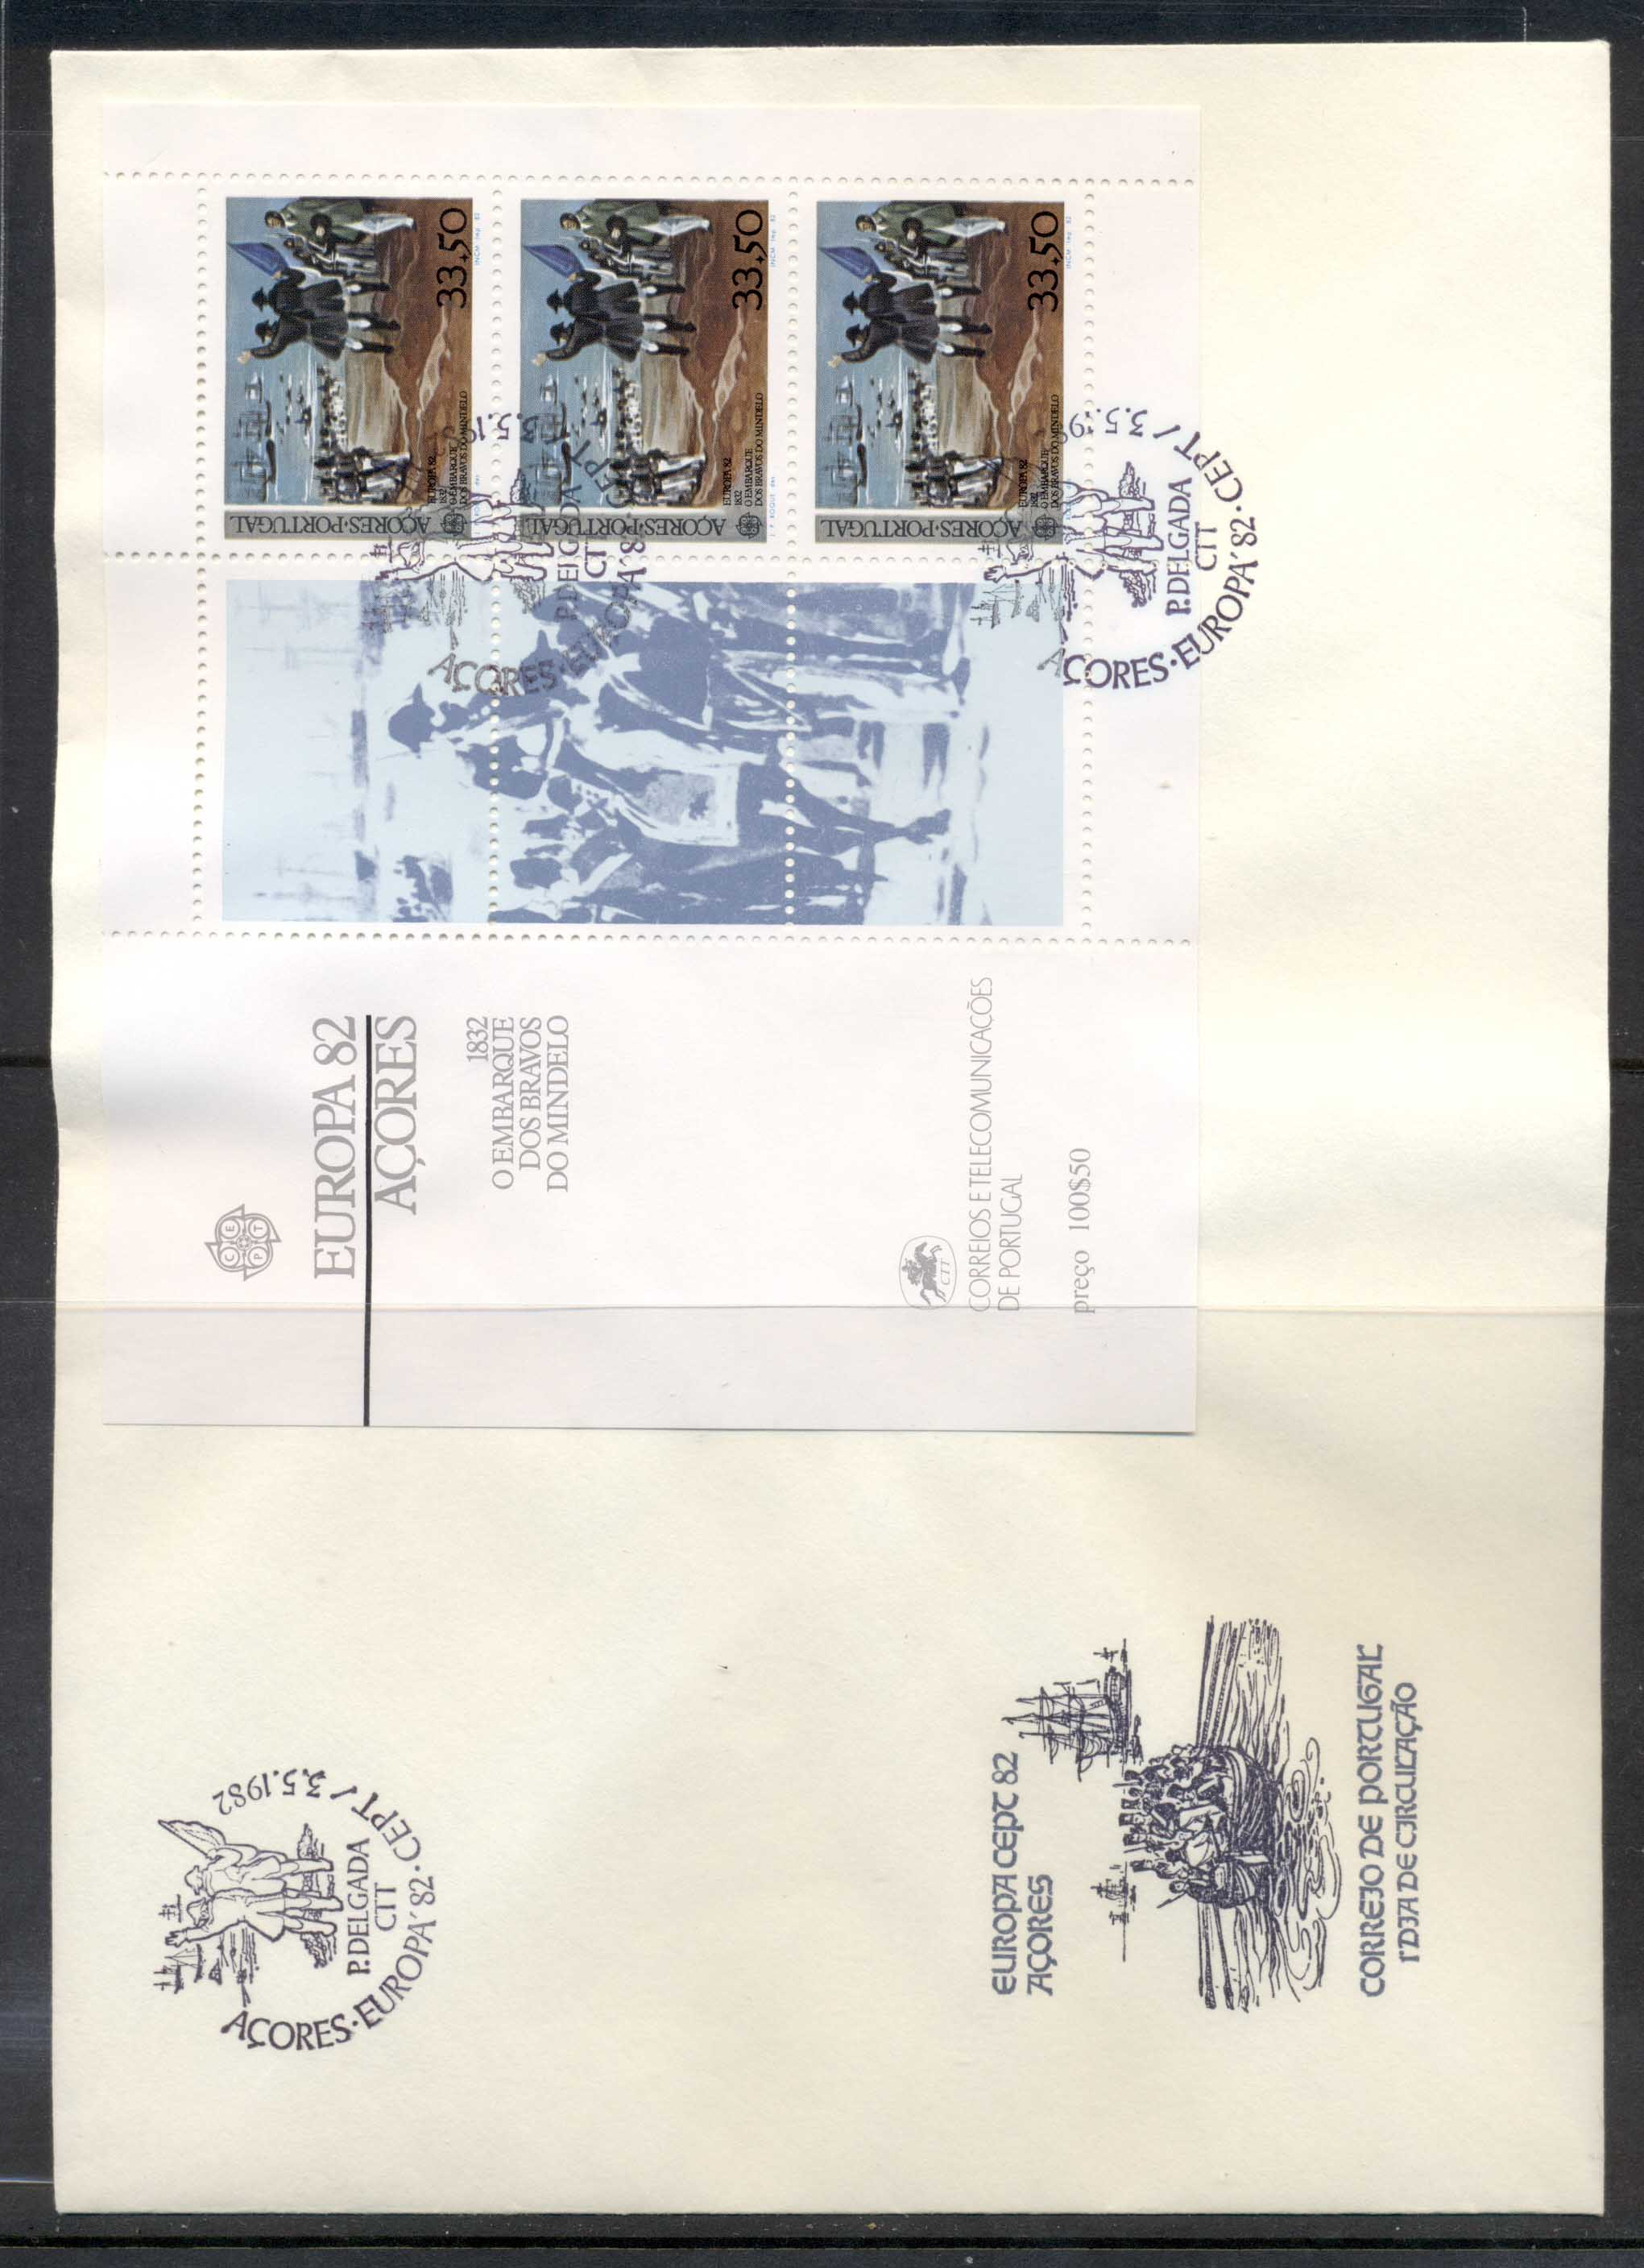 Azores 1982 Europa History XLMS FDC